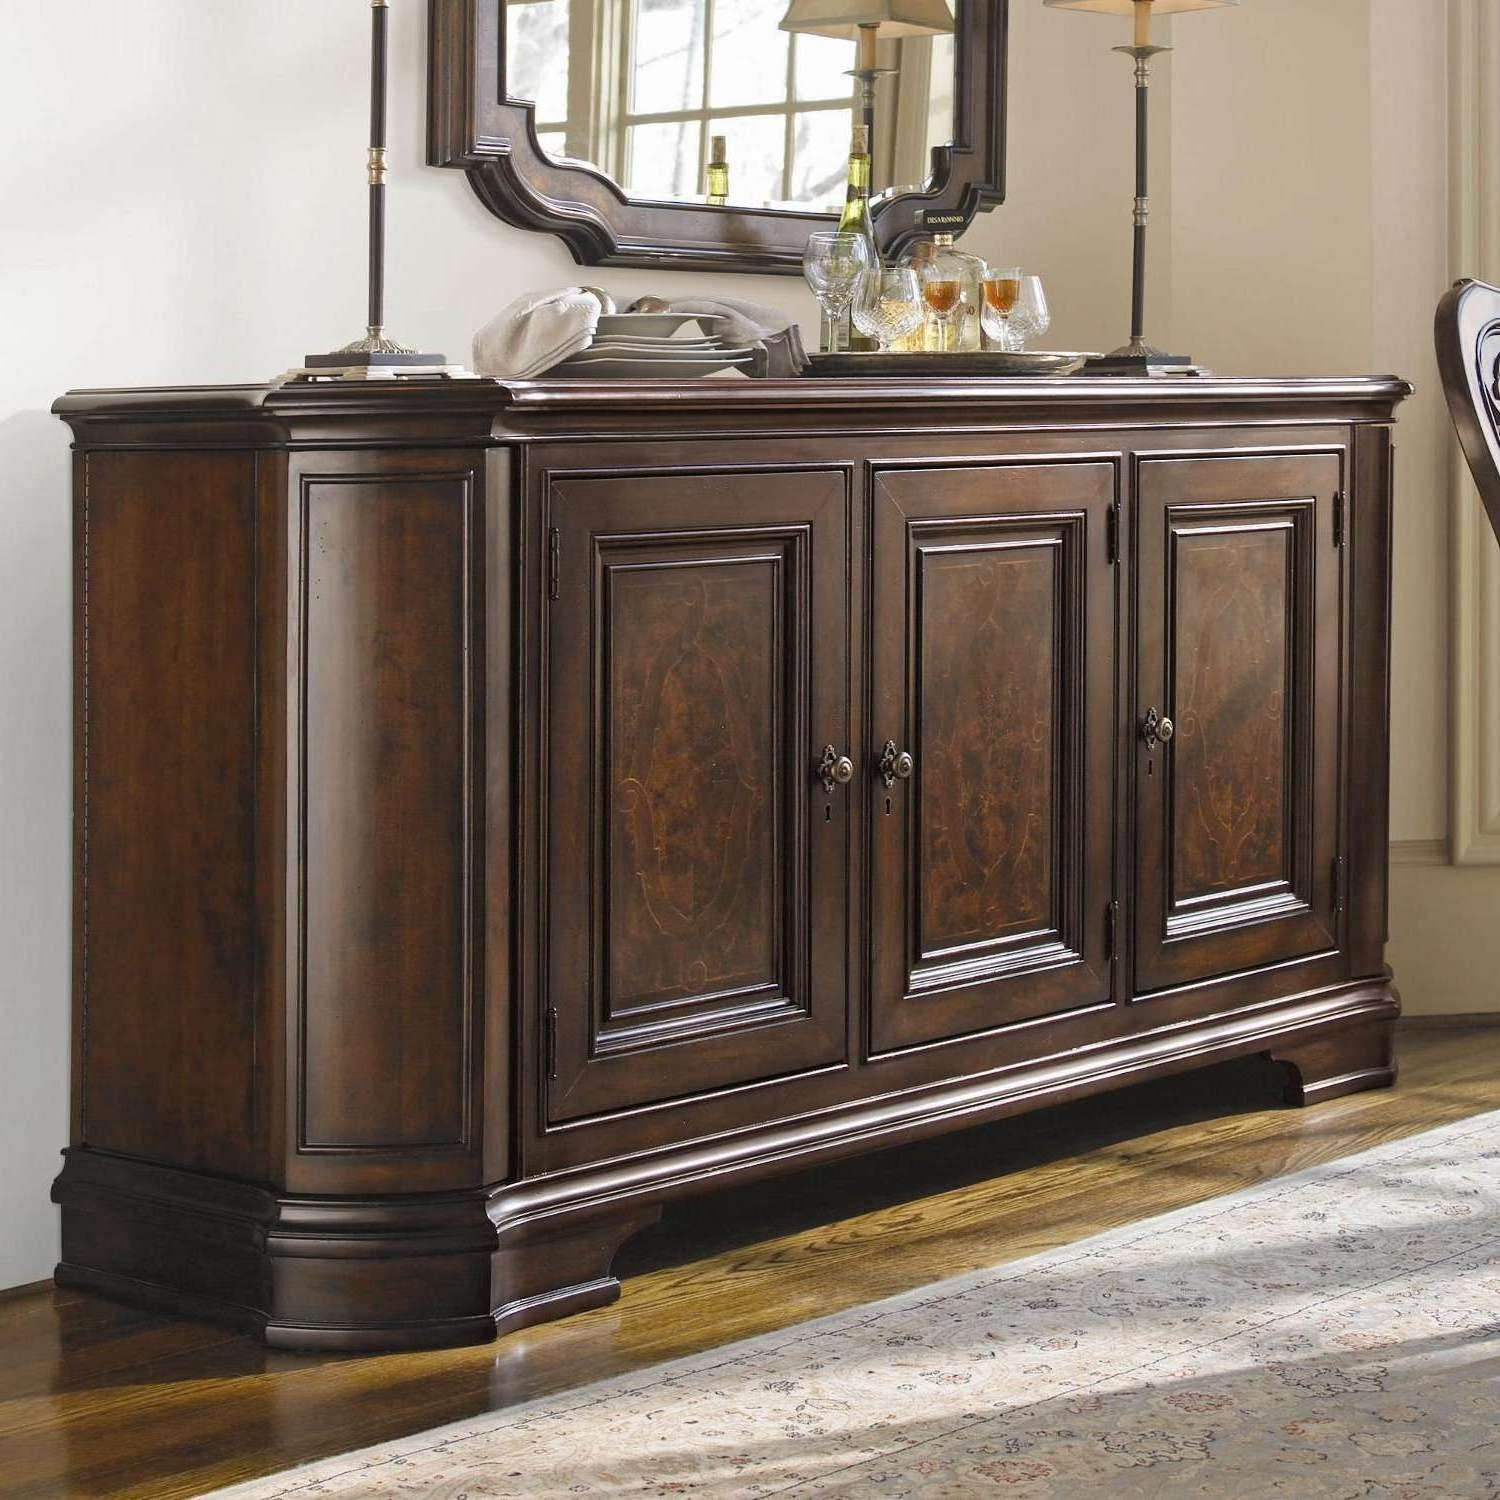 20 Inspirations Of Dining Room Servers And Sideboards Regarding Dining Room Buffets Sideboards (View 10 of 20)